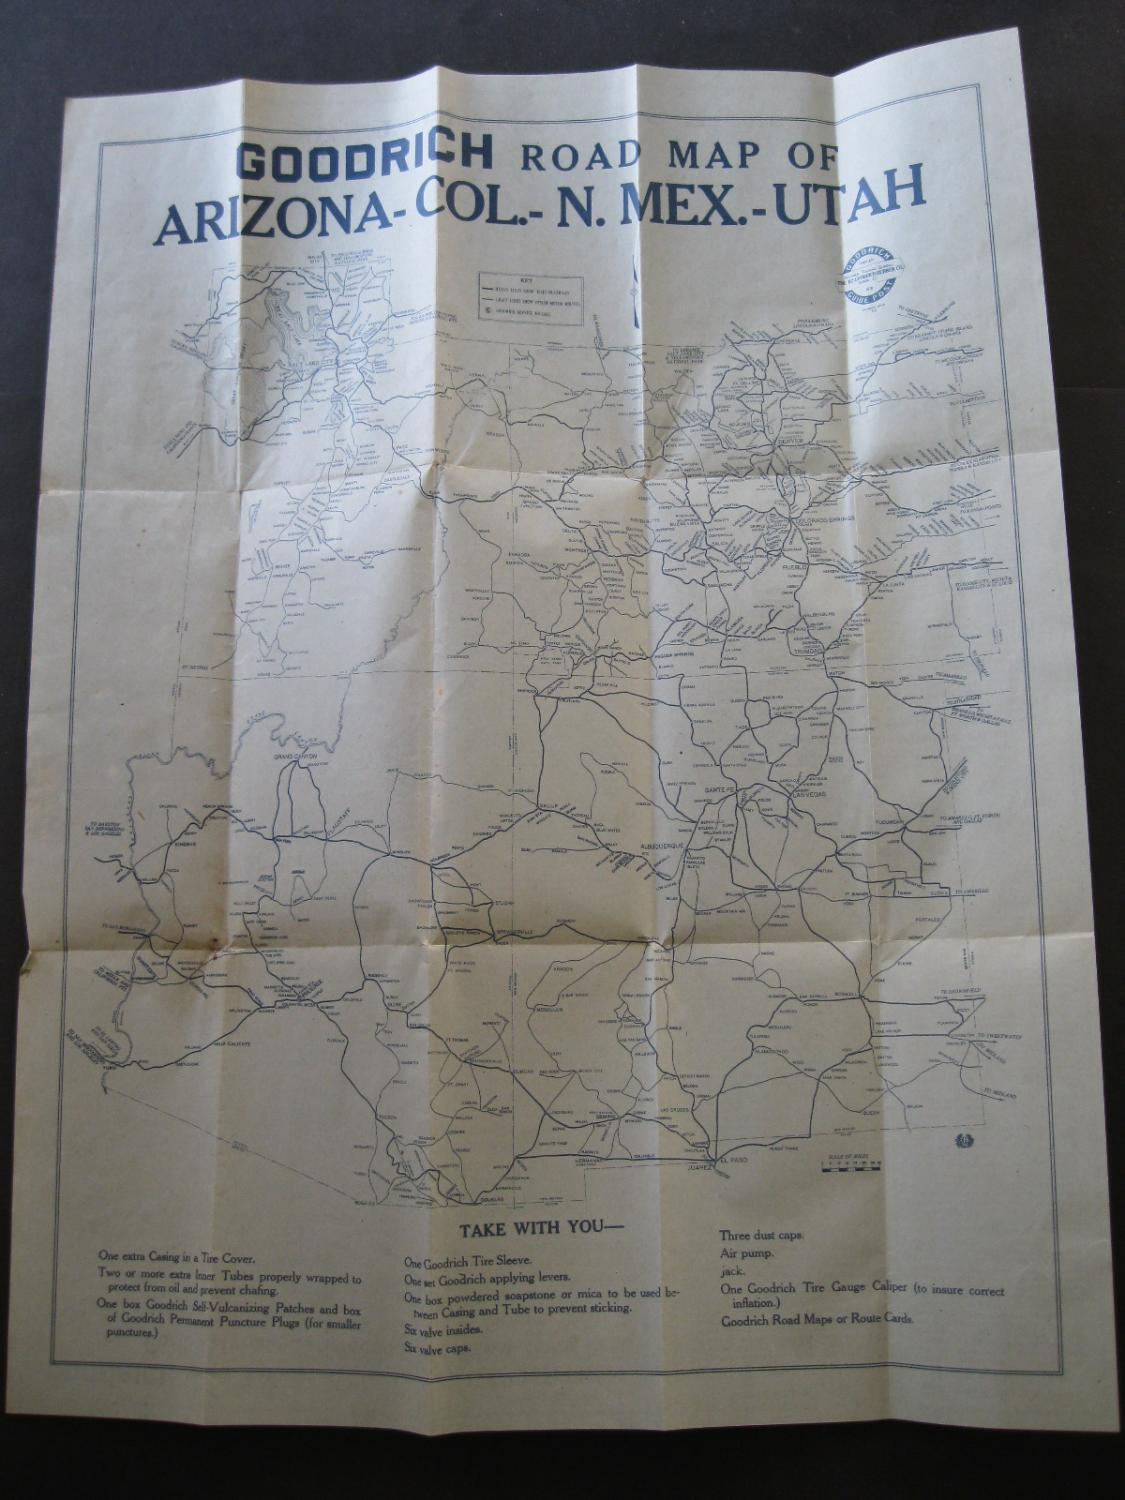 Road Map Of Arizona And New Mexico.Goodrich Road Map Of Arizona Colorado New Mexico Utah 1918 By